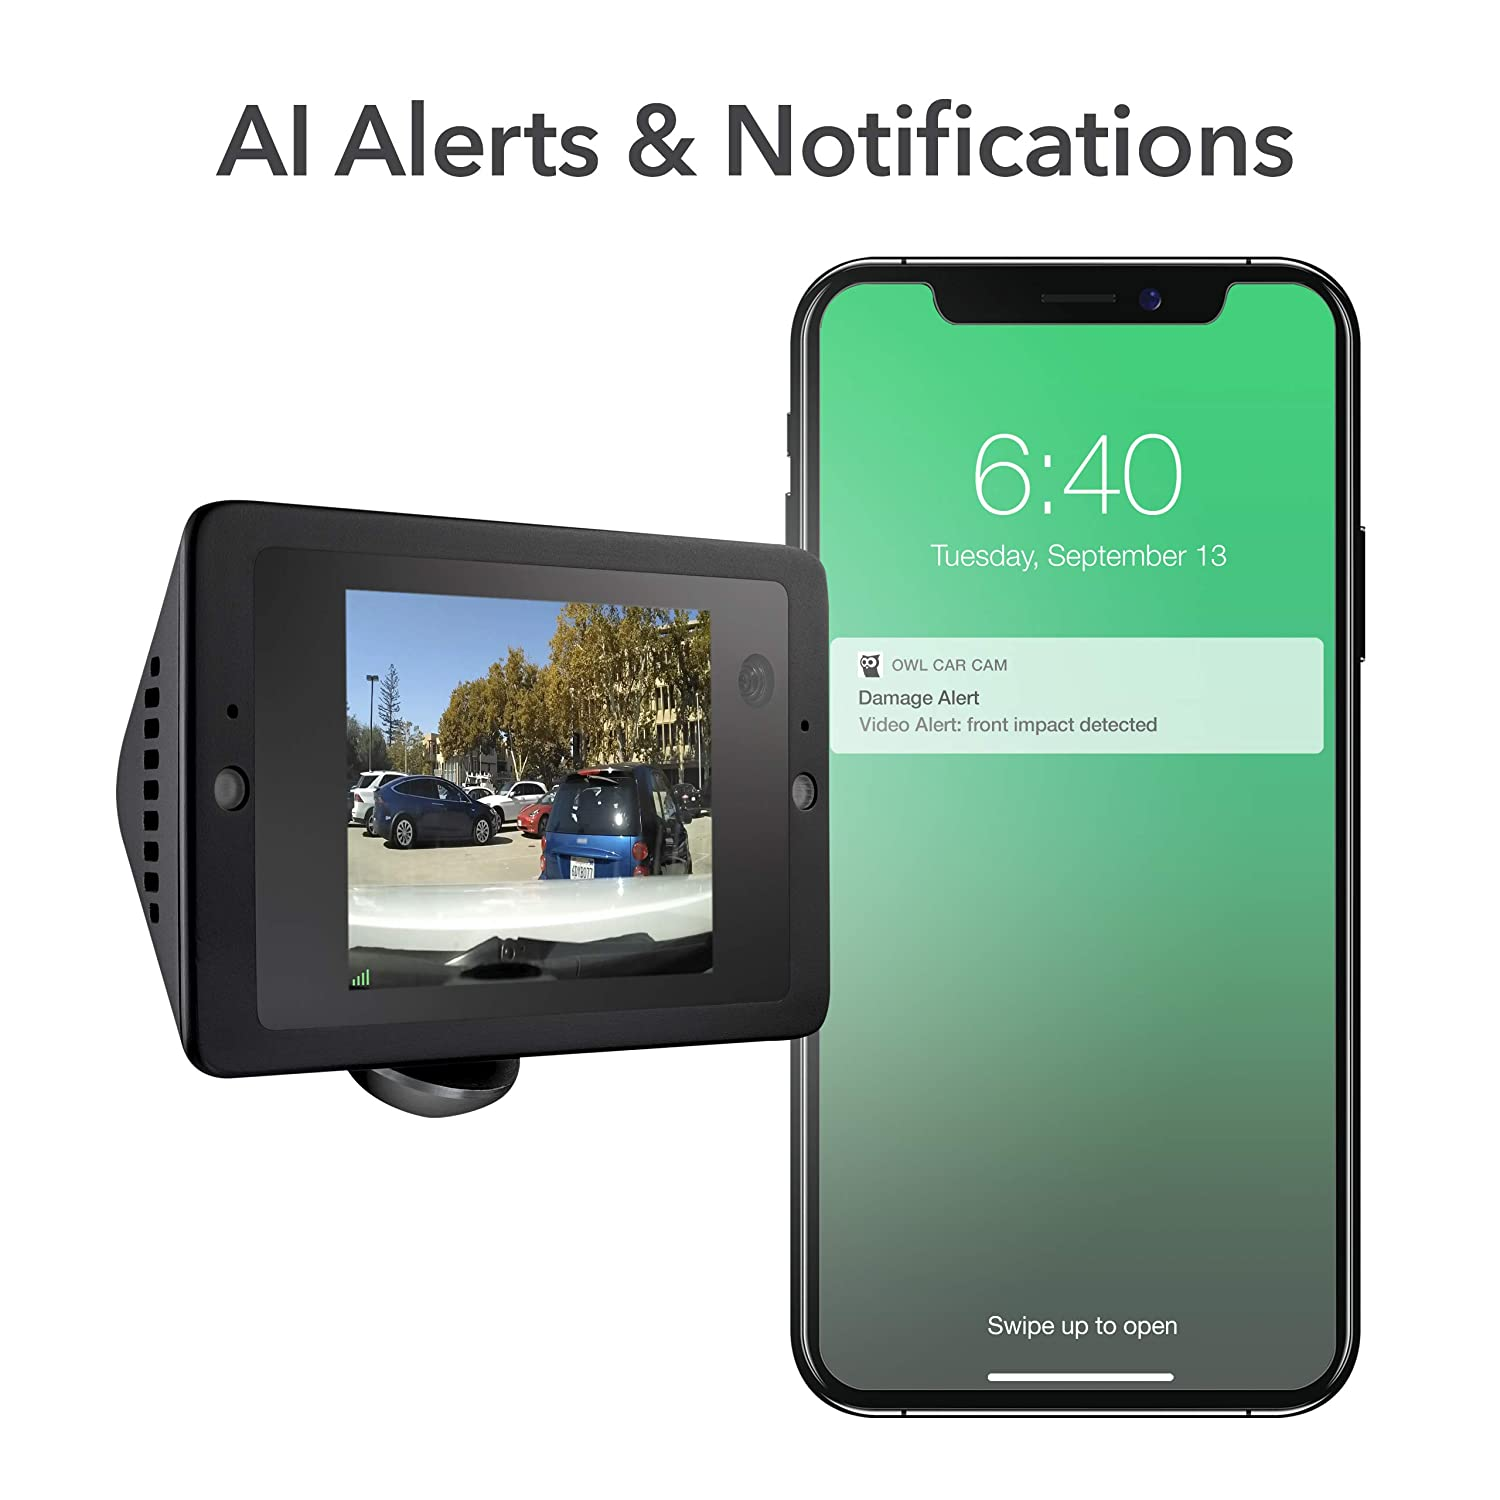 History Video Alerts Dual HD Cameras Live View Hands-Free Voice Control 2-Way Talk Owlcam: The 4G LTE Smart Dash Camera That Sends Video to Your Phone US Only Driving /& Parked Crash Assist